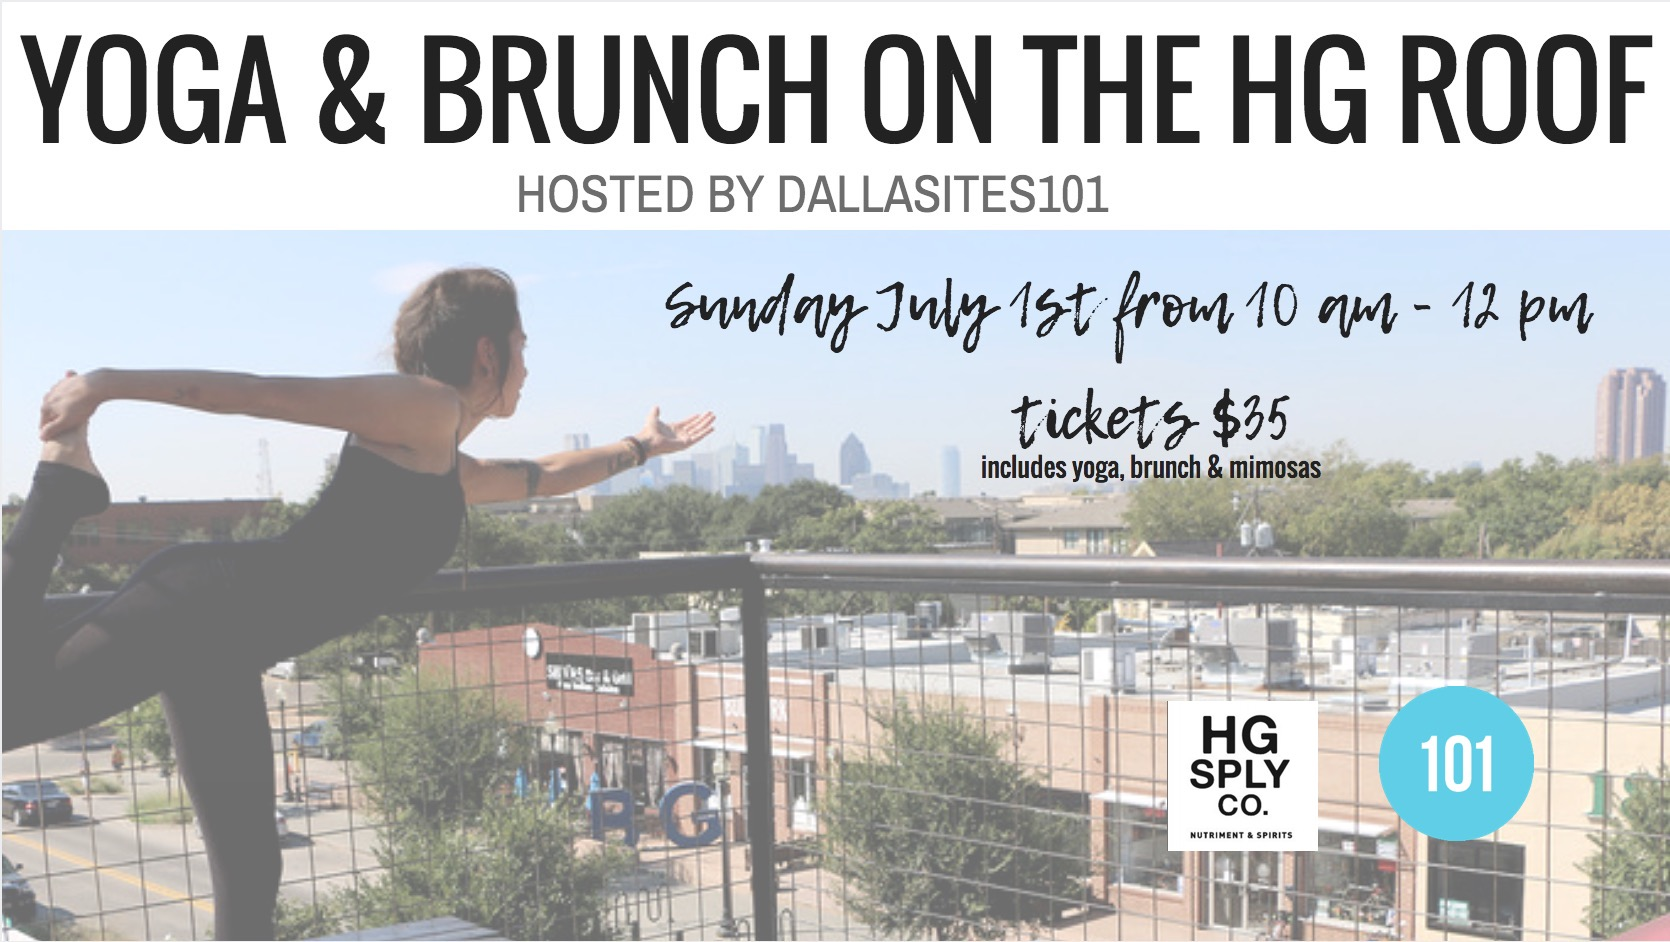 Join is for yoga with a view hosted by Dallasites101!  A rooftop yoga class taught by Karla Gallegos from 10:00am to 11:00am. Followed by a delicious HG brunch and plenty of mimosas to go around from 11:00am to 12:00pm!  What to bring:  -yoga mat  -towel  -water bottle  -ID